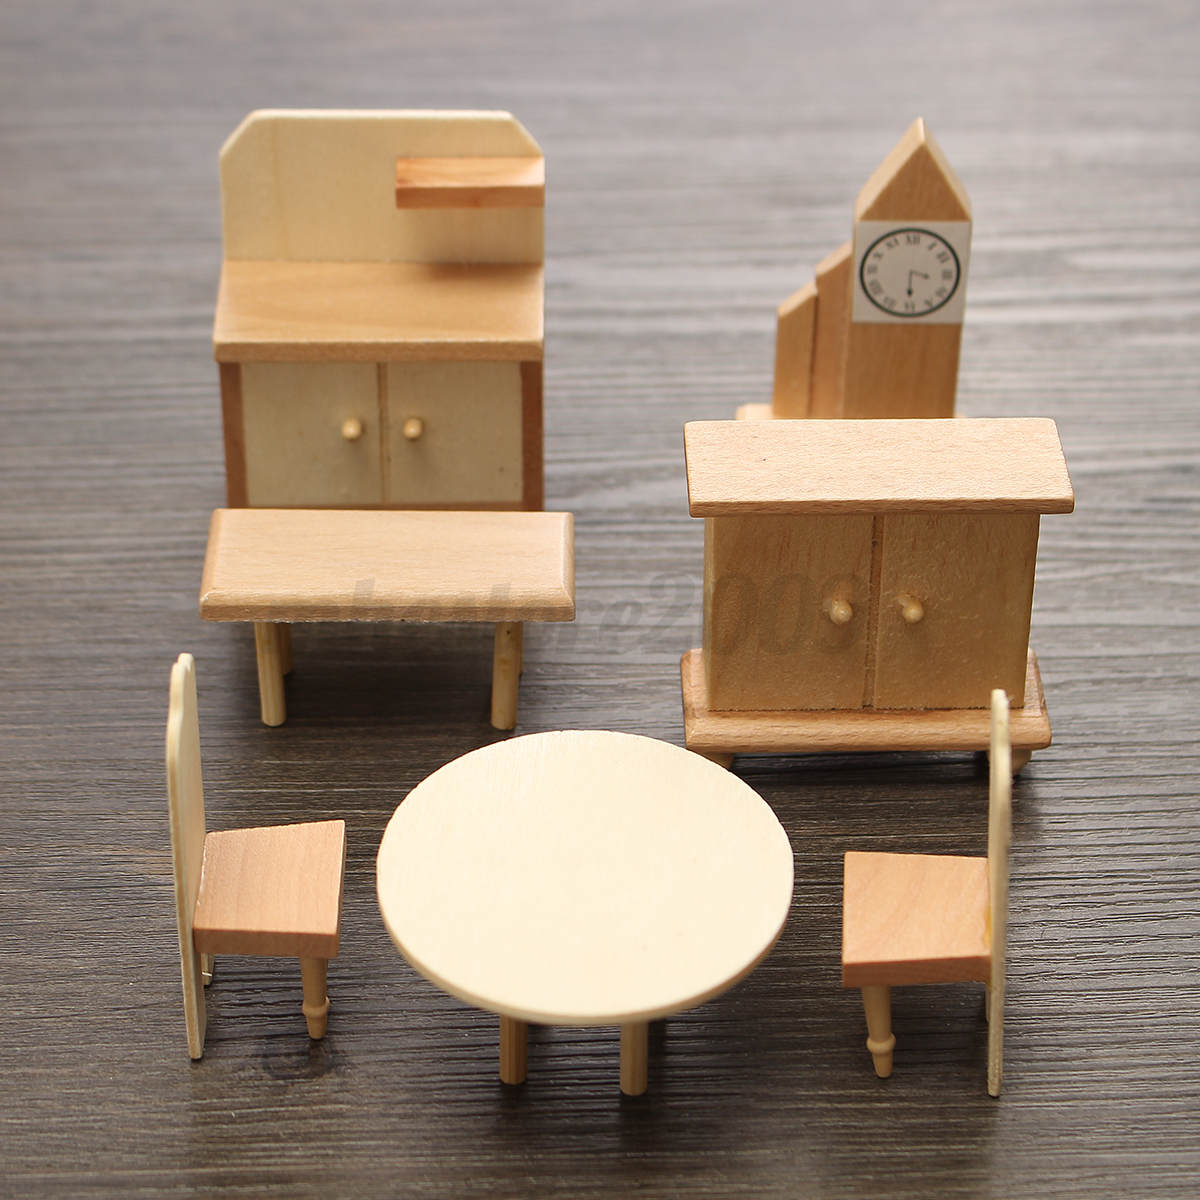 29 Pcs Set Dollhouse Miniature Unpainted Wooden Furniture